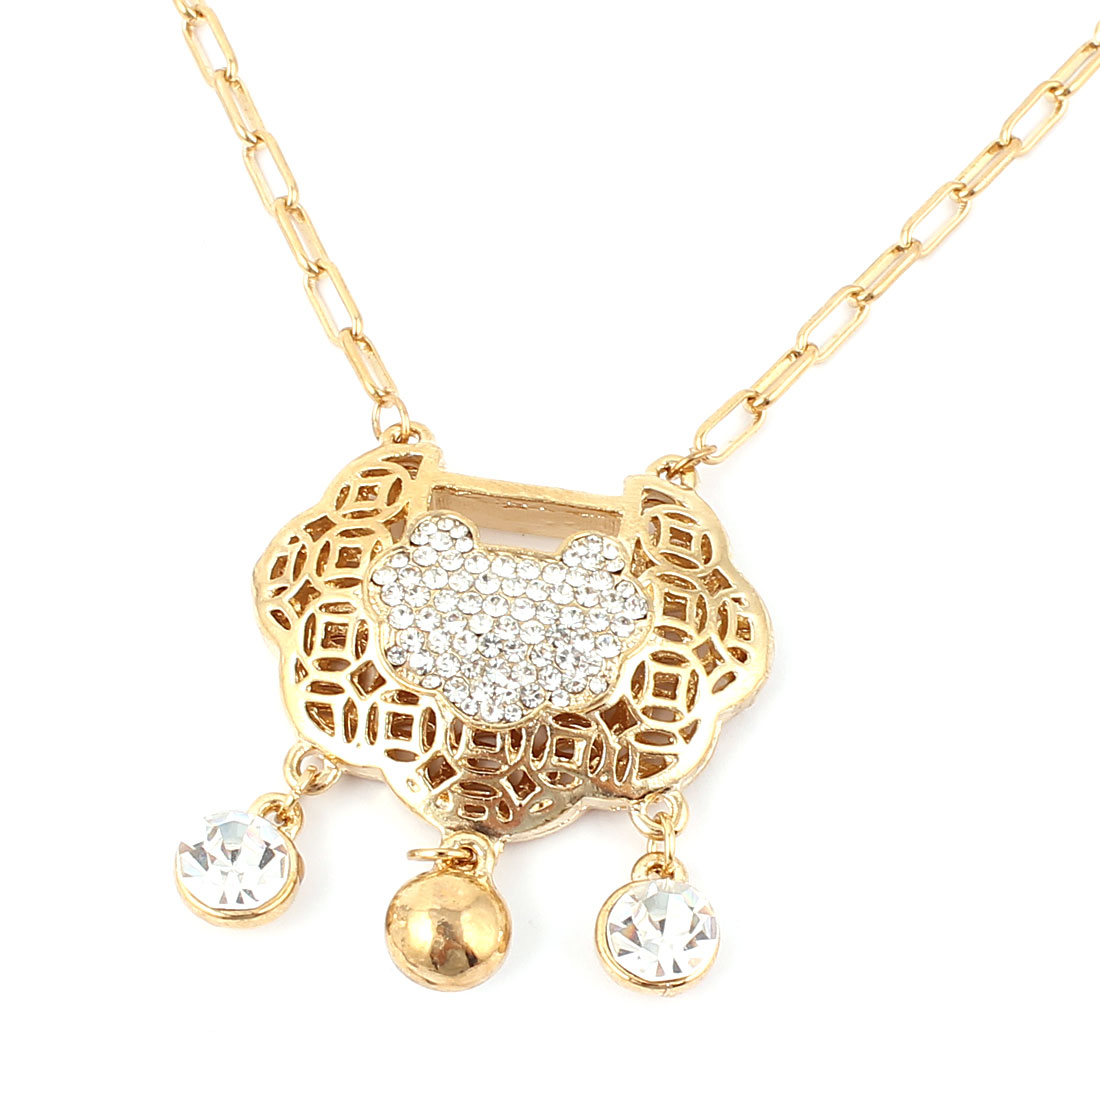 Rhinestone Decor Chinese Longevity Lock Pendant Fashion Necklace Gold Tone